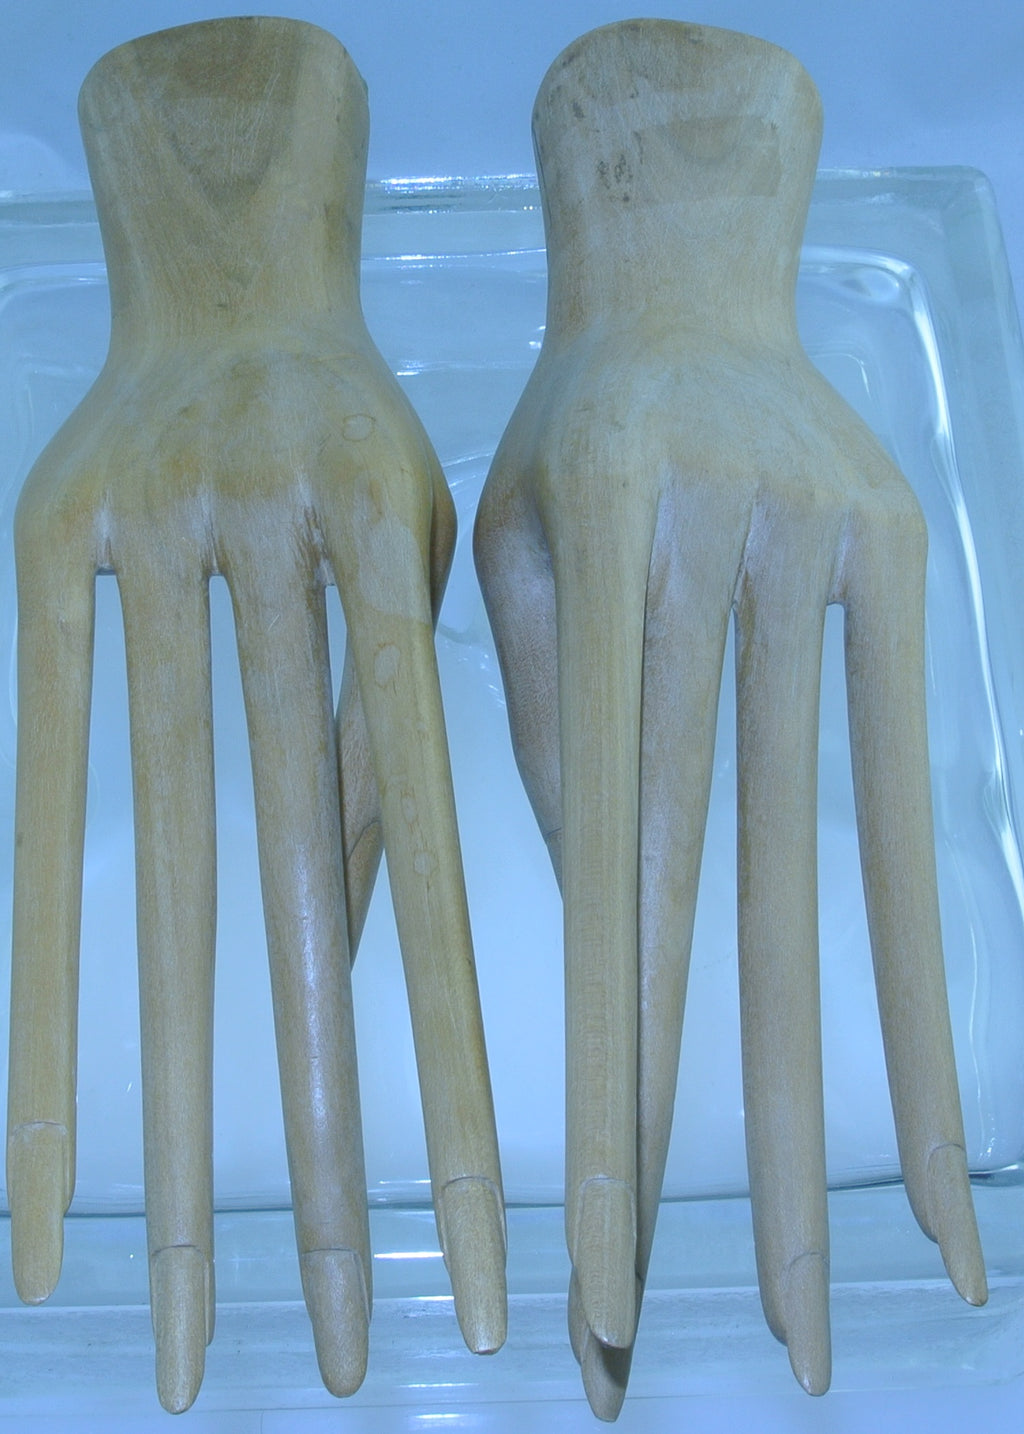 BEAUTIFUL VINTAGE WOODEN MANNEQUIN HANDS LONG ELEGANT FINGERS FEMALE COUNTER DISPLAY RINGS GLOVES ETC PAIR - MASS PRODUCED